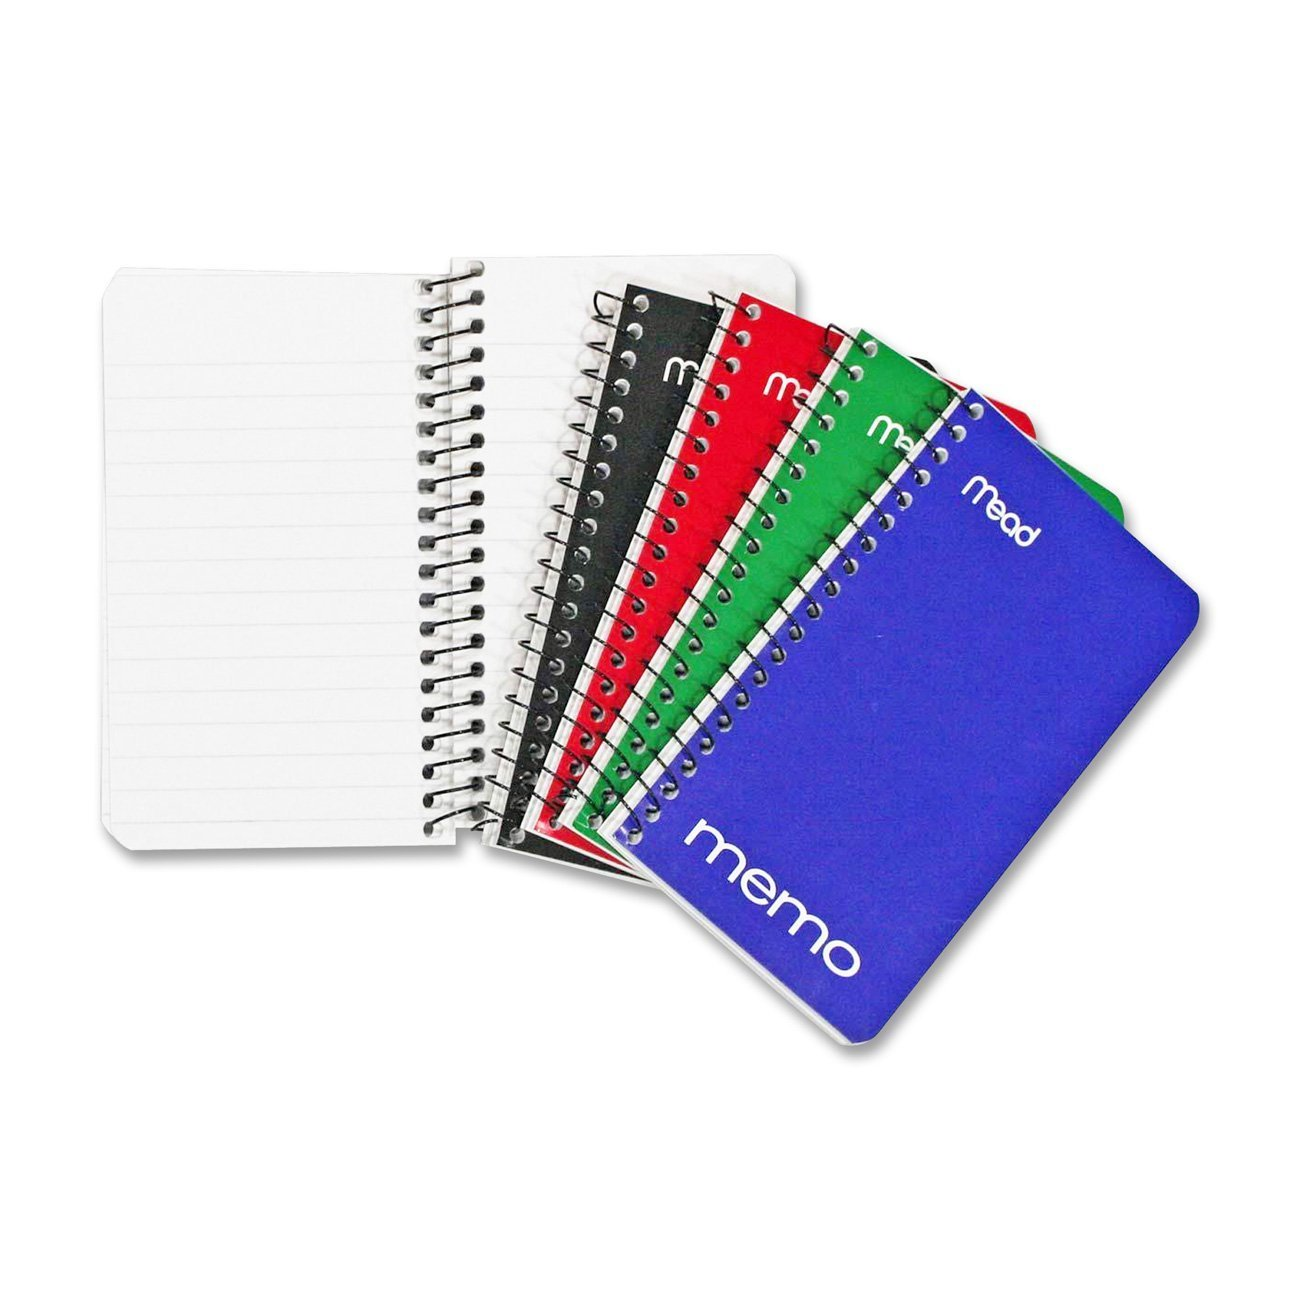 "Mead Small Spiral Notebook, Spiral Memo Pad, College Ruled Paper, 60 Sheets, 5"" x 3"", Assorted Colors, 8 Pack (73605)"